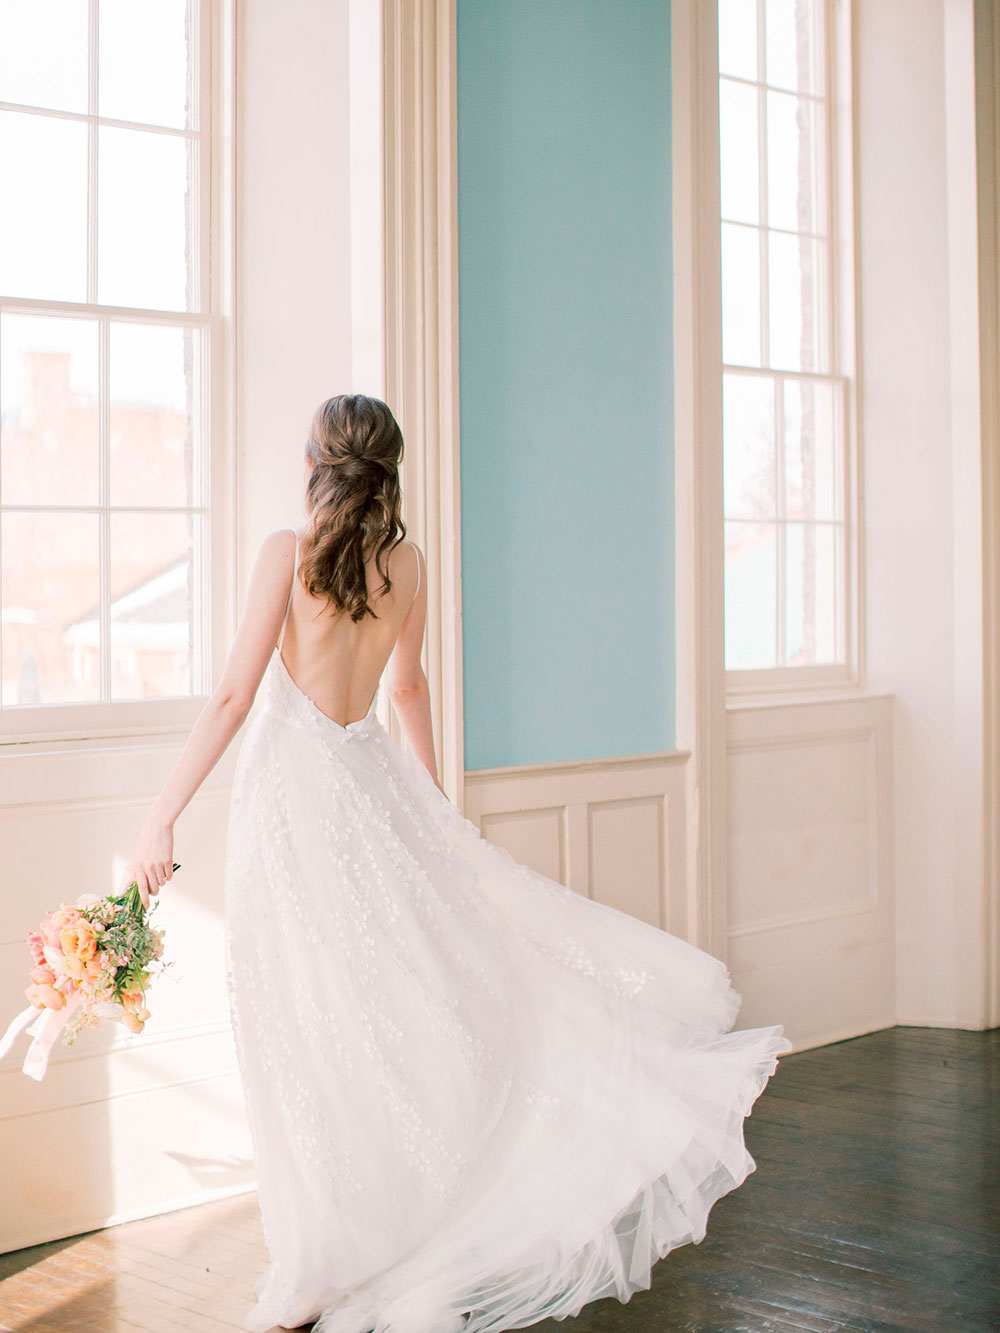 Niagara-on-the-Lake-Courthouse-Vineyard-Bride-Editorial-photo-by-Jessica-Imrie-Photography-039.jpg